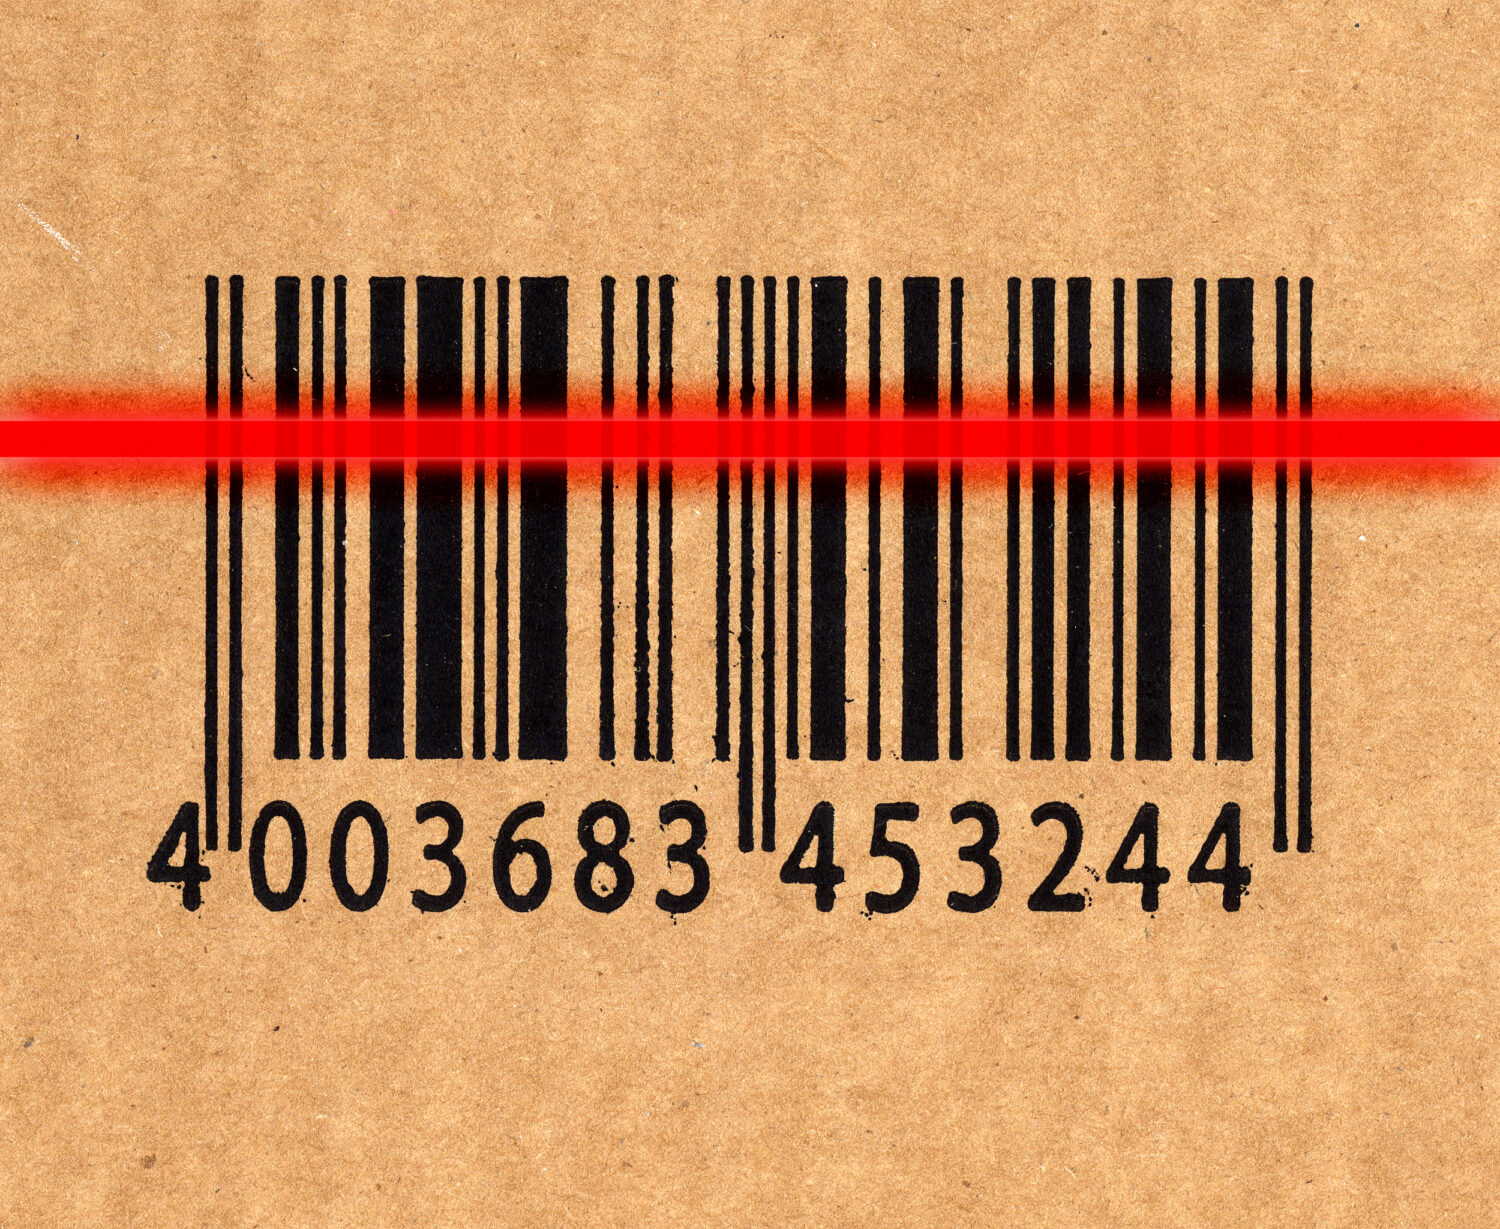 close up image of barcode on cardboard